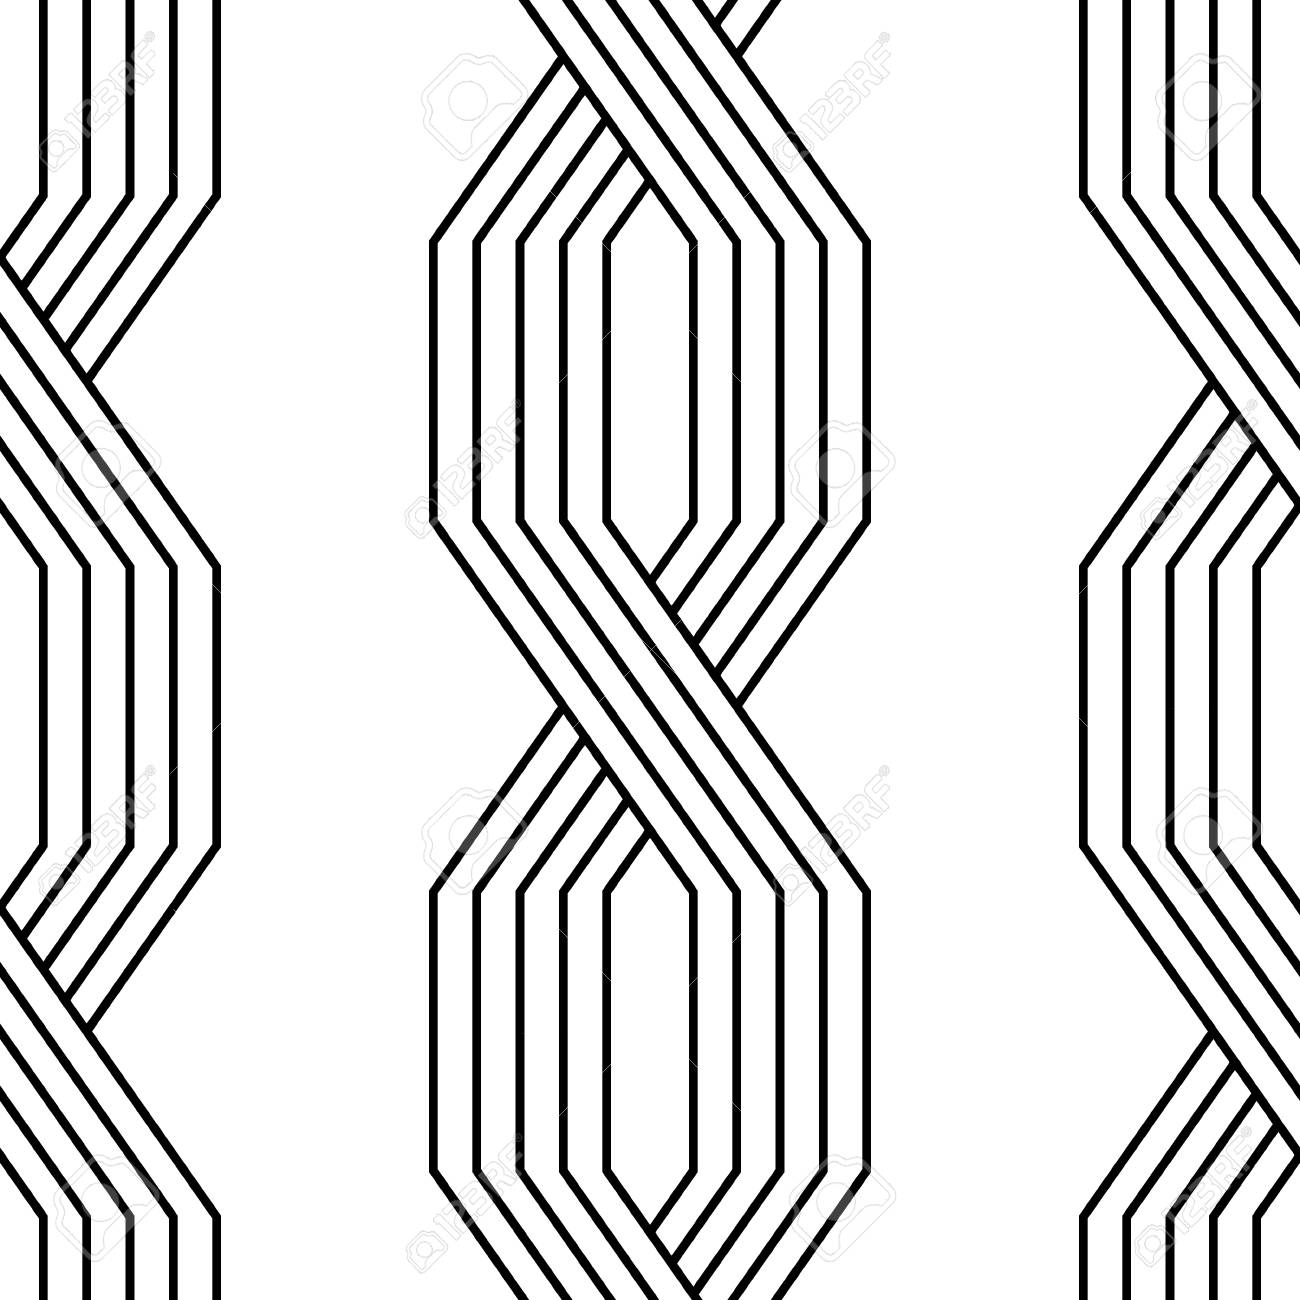 Black and white lines geometric art deco style simple seamless..